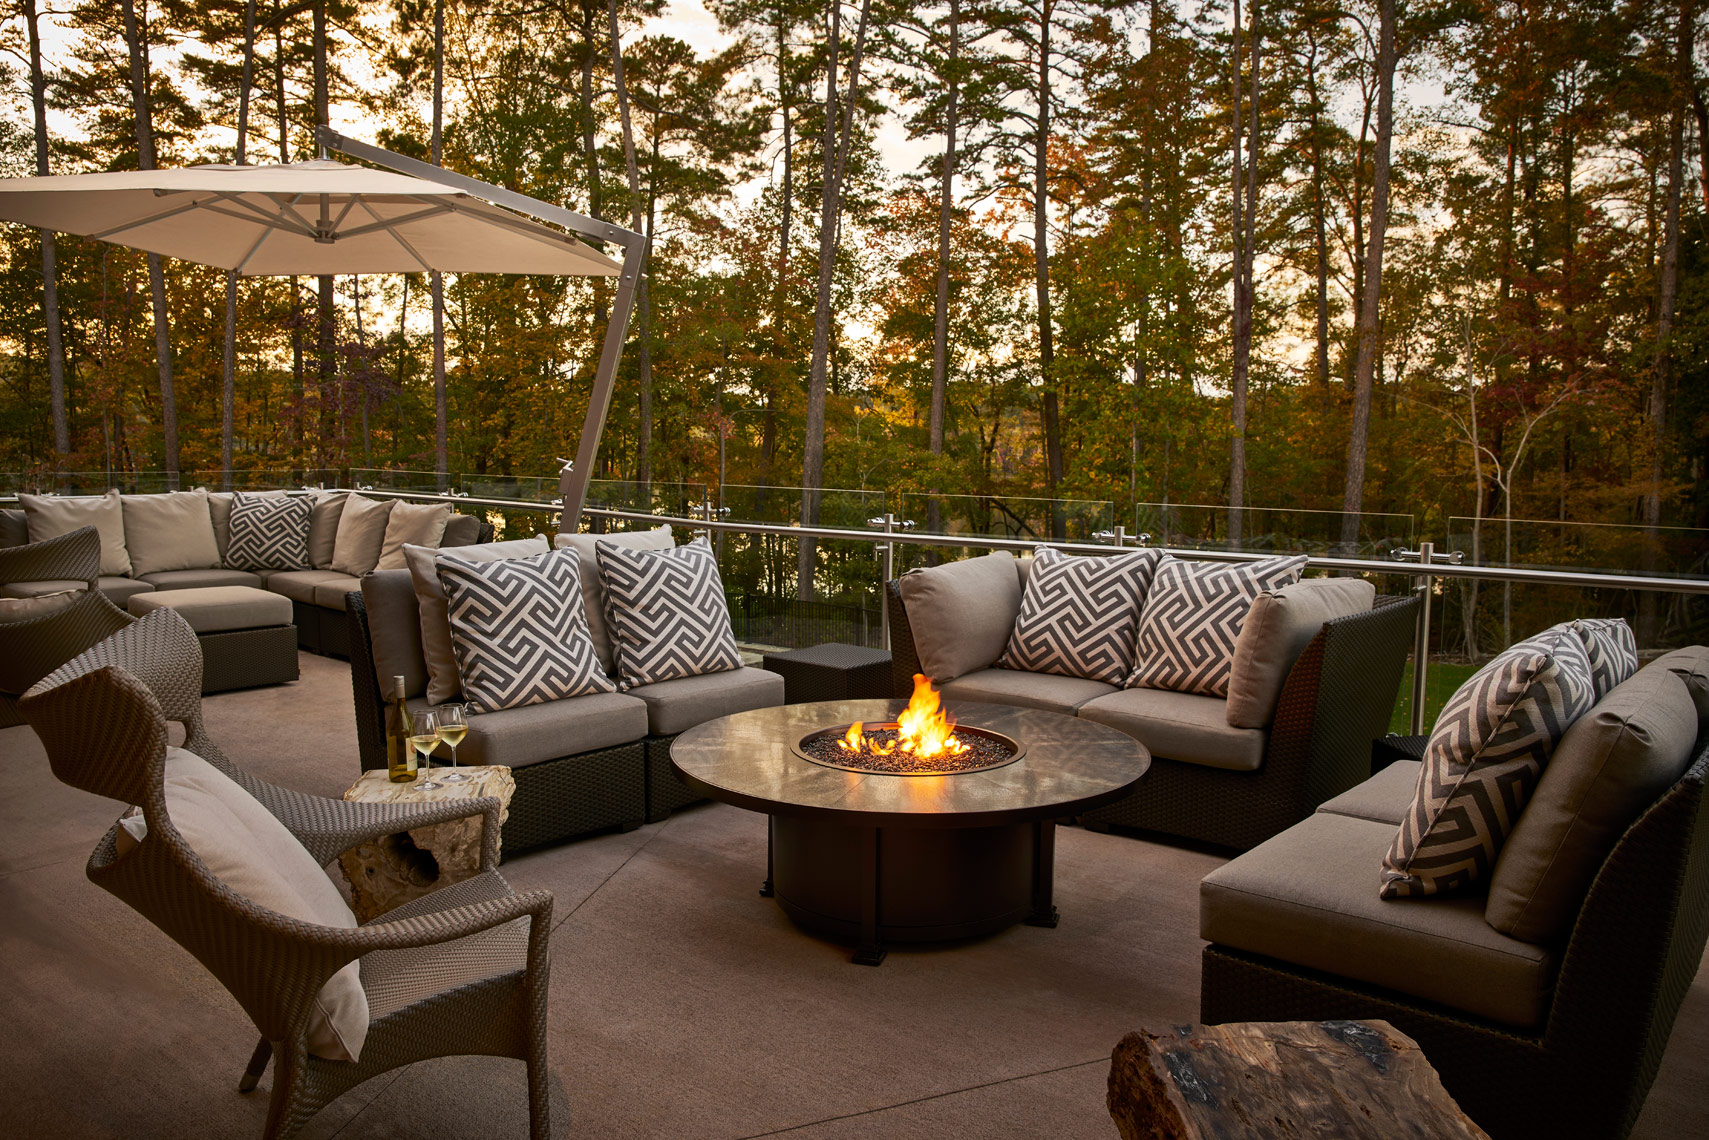 StateView-Hotel-Fire-Pit